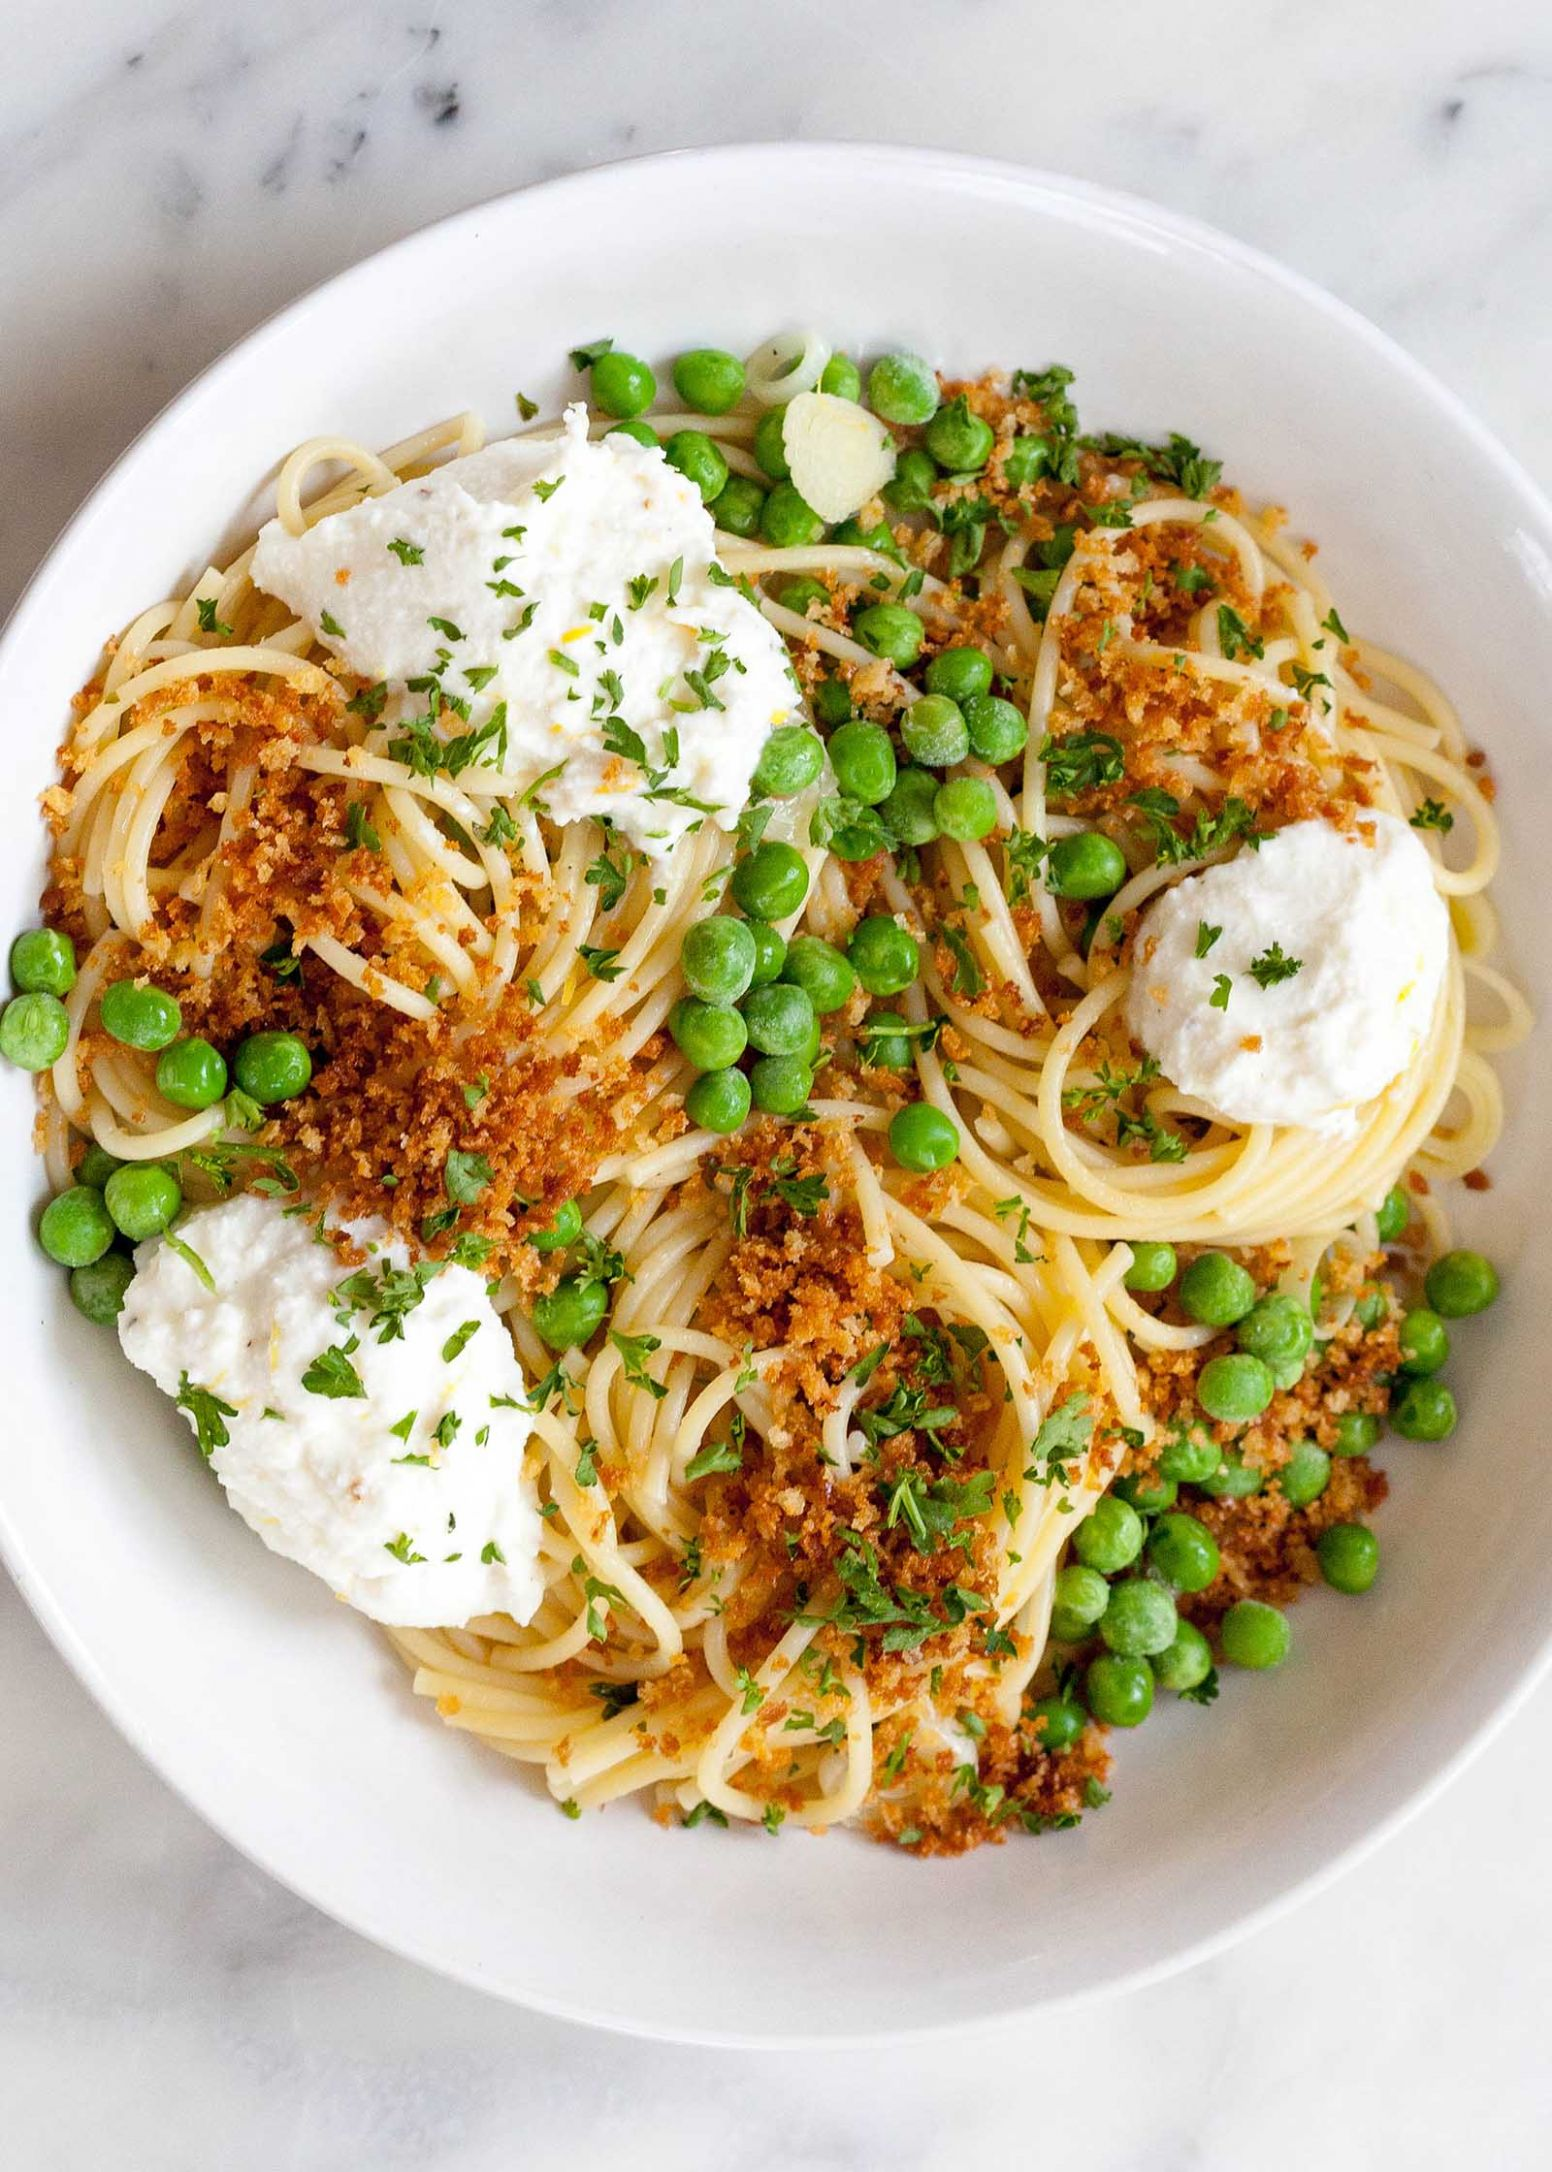 Lemony Spaghetti with Peas and Ricotta - Recipes Pasta Ricotta